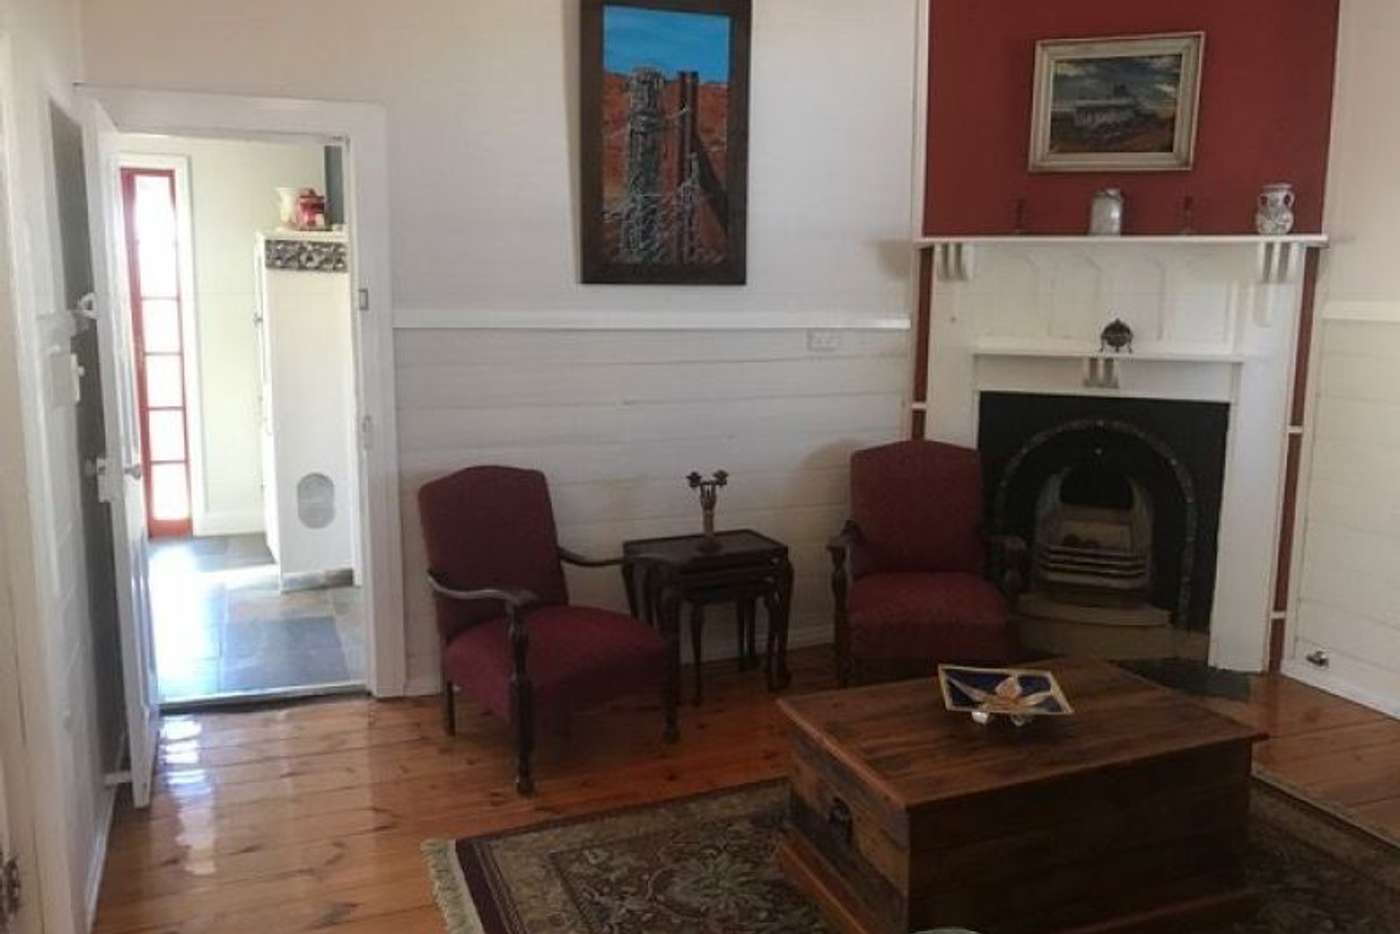 Main view of Homely house listing, 97A Thomas St, Broken Hill NSW 2880